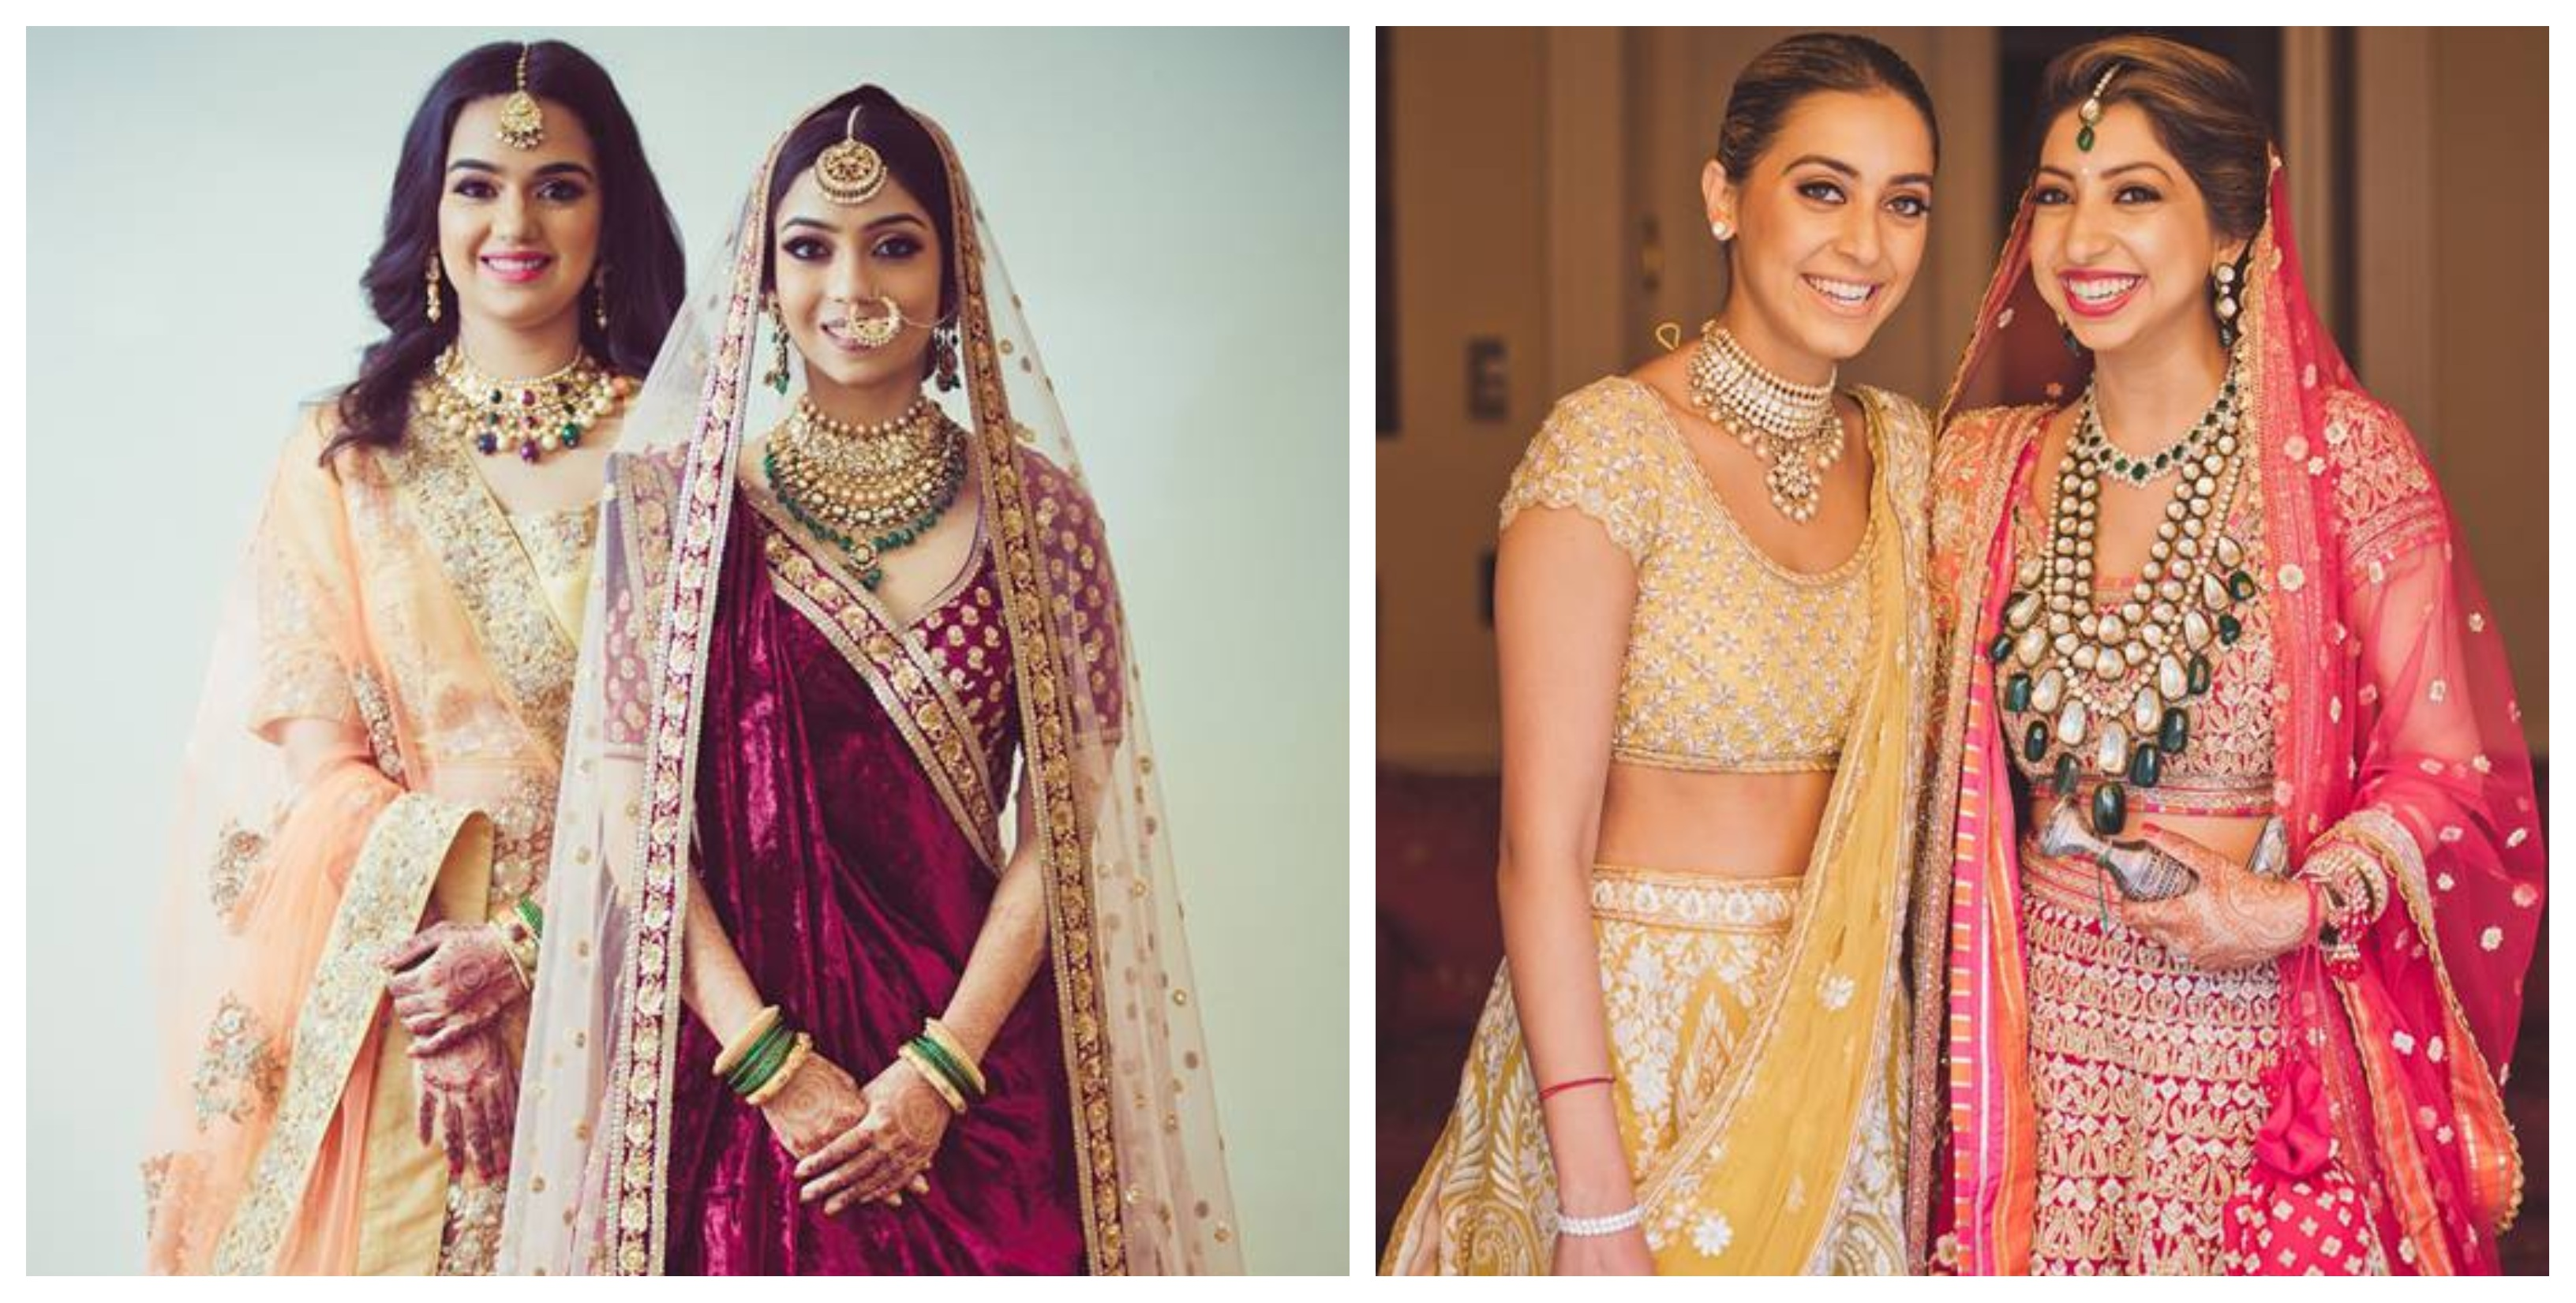 15 Stunning Indian Wedding Dresses for Bride\u0027s Sister! , Blog